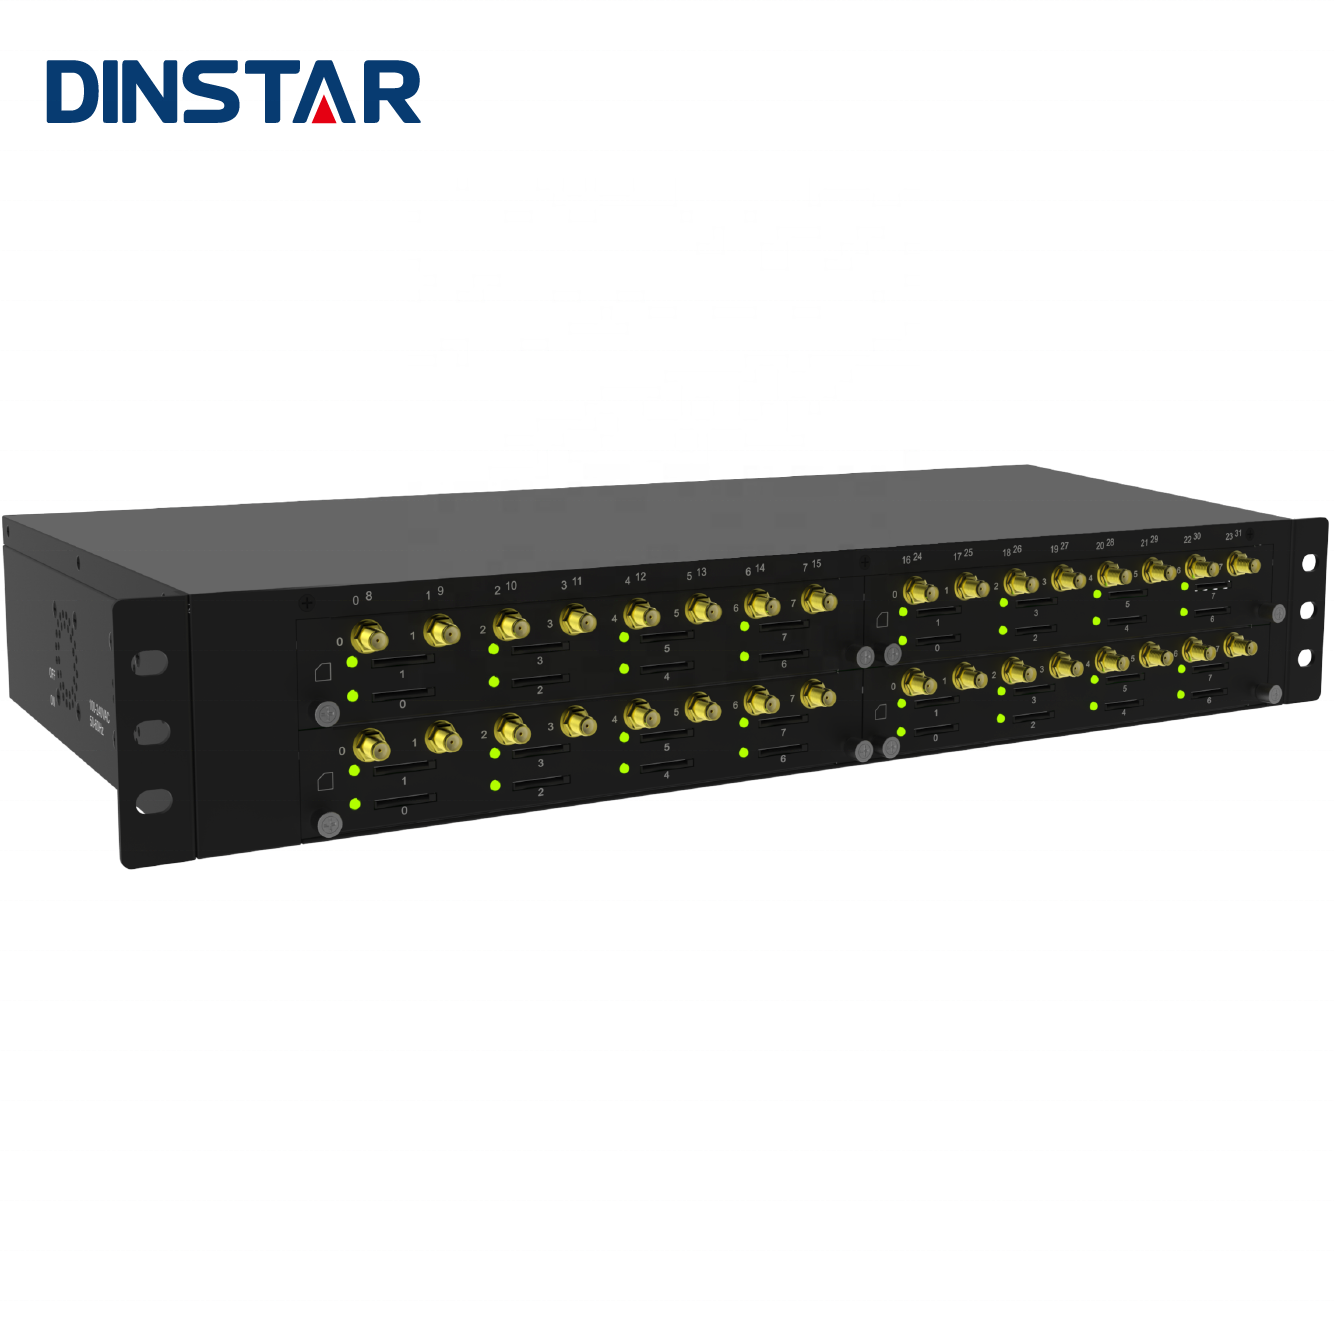 Dinstar Call Center SIM Box 3G 4G LTE 32 Port GSM Voip Gateway